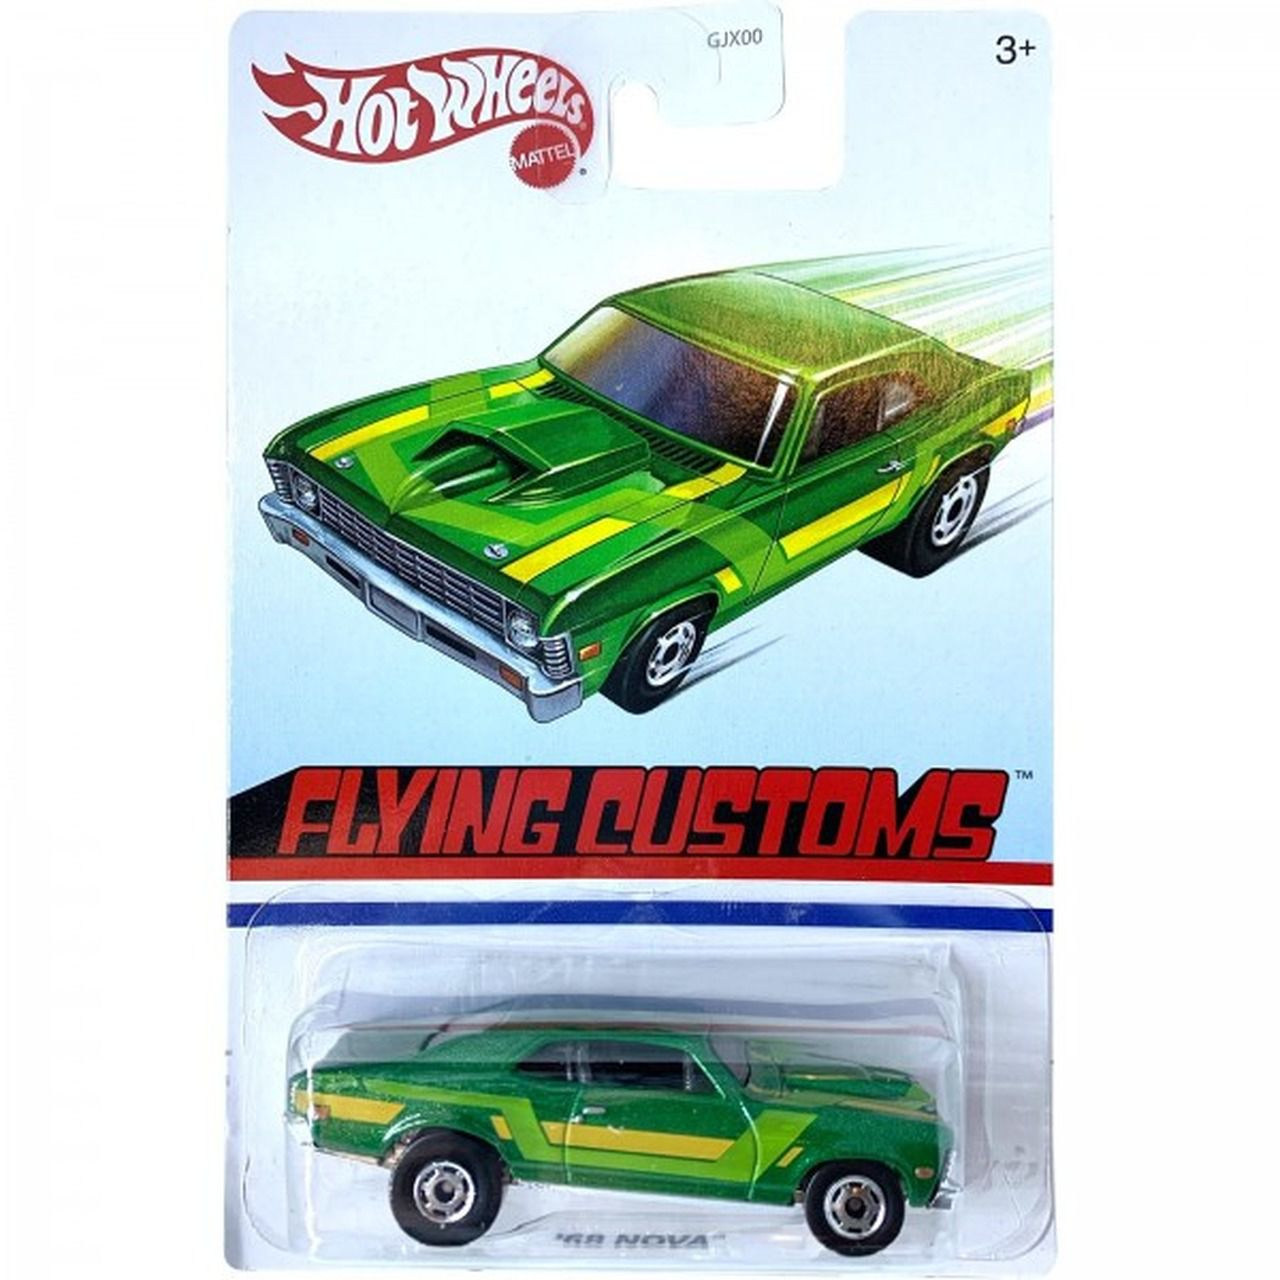 Carrinho '68 Nova (Flying Customs) GJX00 - Hot Wheels